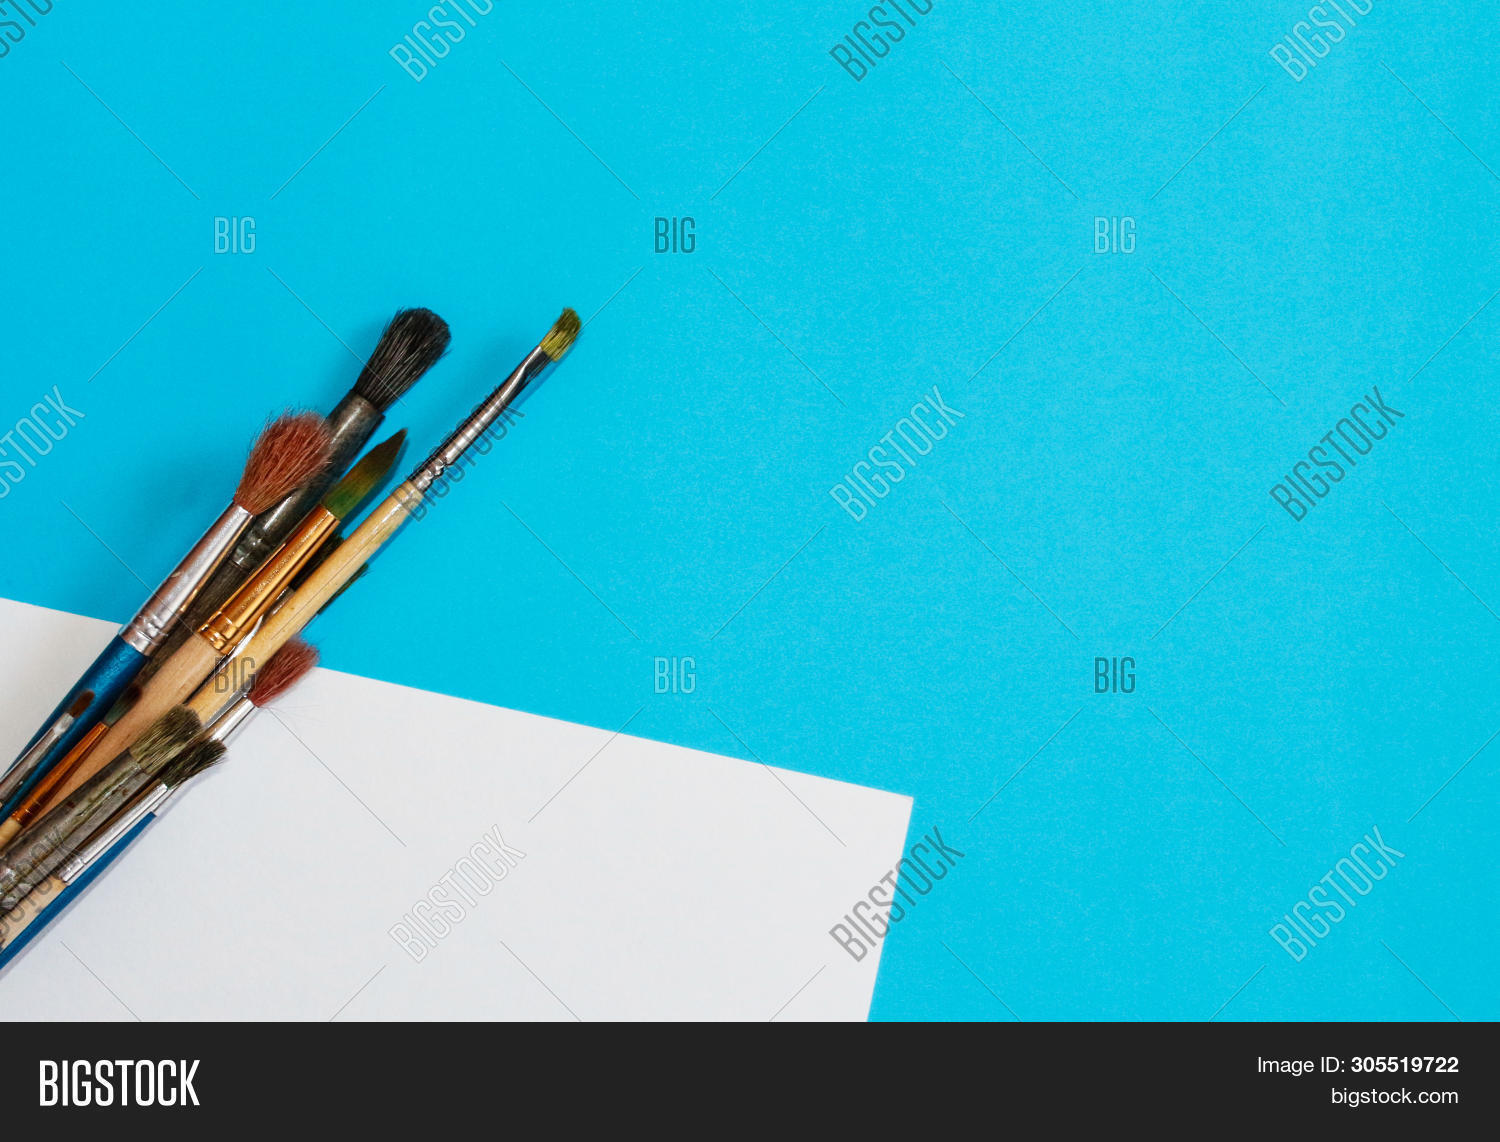 accessories,art,artist,artistic,artwork,background,blue,brush,closeup,color,colorful,concept,copy,craft,creative,creativity,design,drawing,education,equipment,for,hobby,paint,paintbrush,painting,school,space,student,supplies,text,tools,work